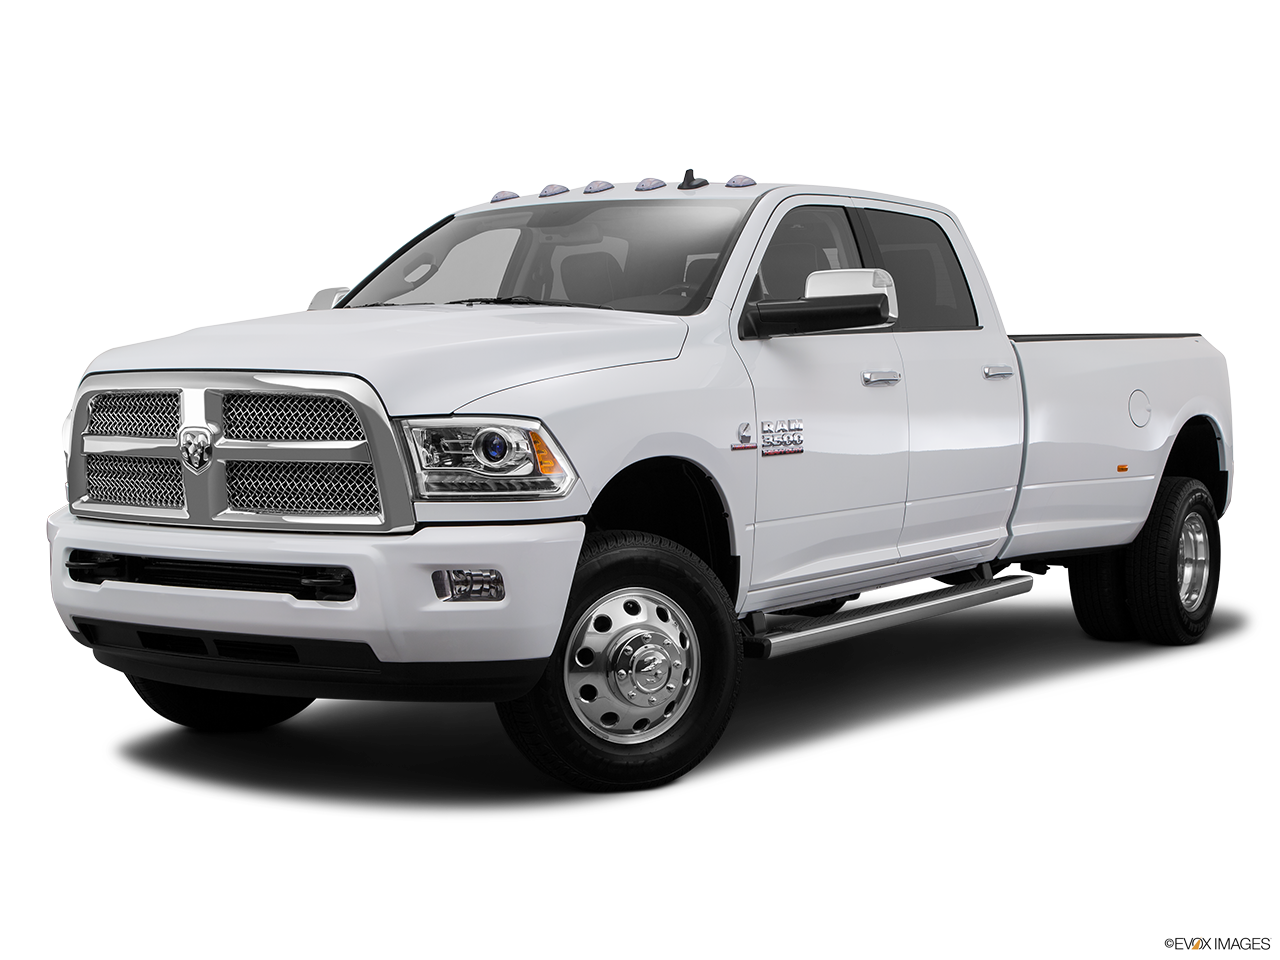 Test Drive A 2015 RAM 3500 at Huntington Beach Chrysler Dodge Jeep Ram in Huntington Beach